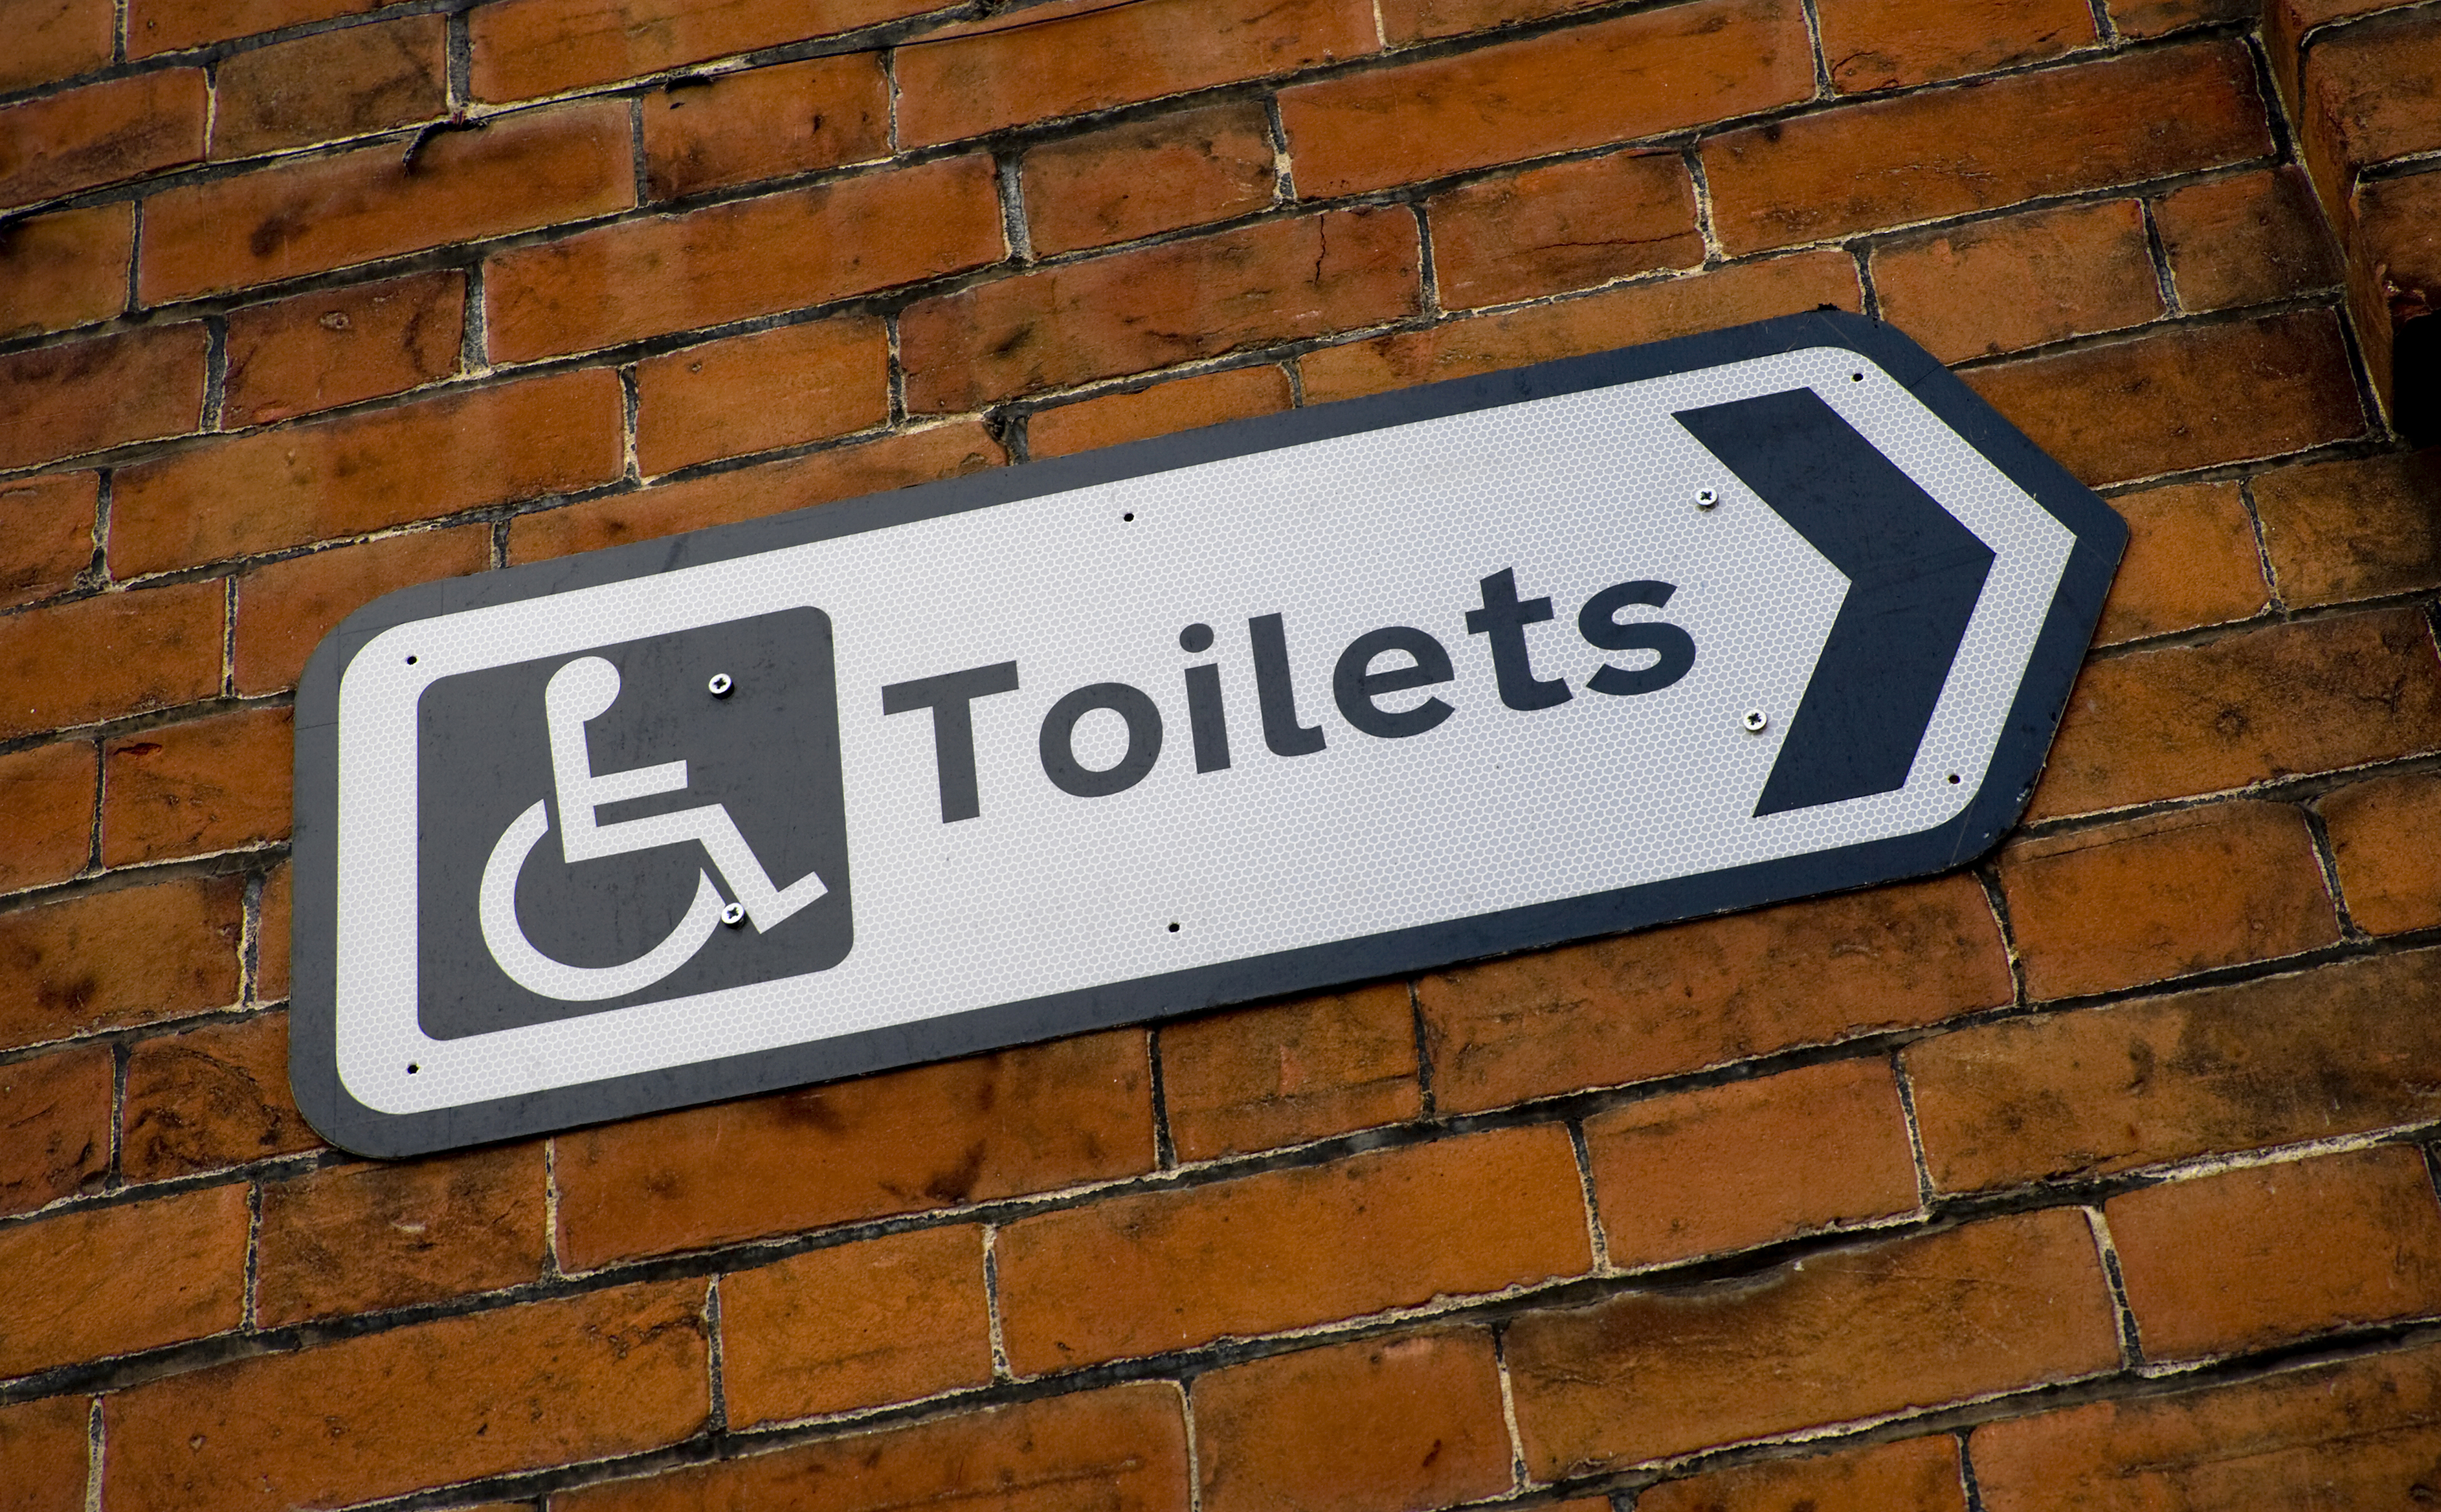 Sign pn brick wall pointing to accessible toilet